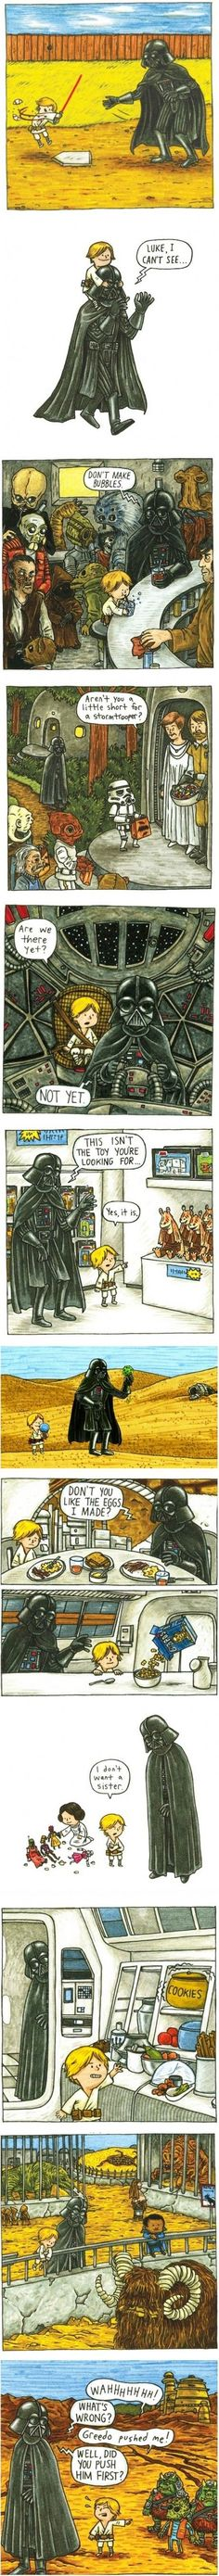 If Darth Vader would have been there...